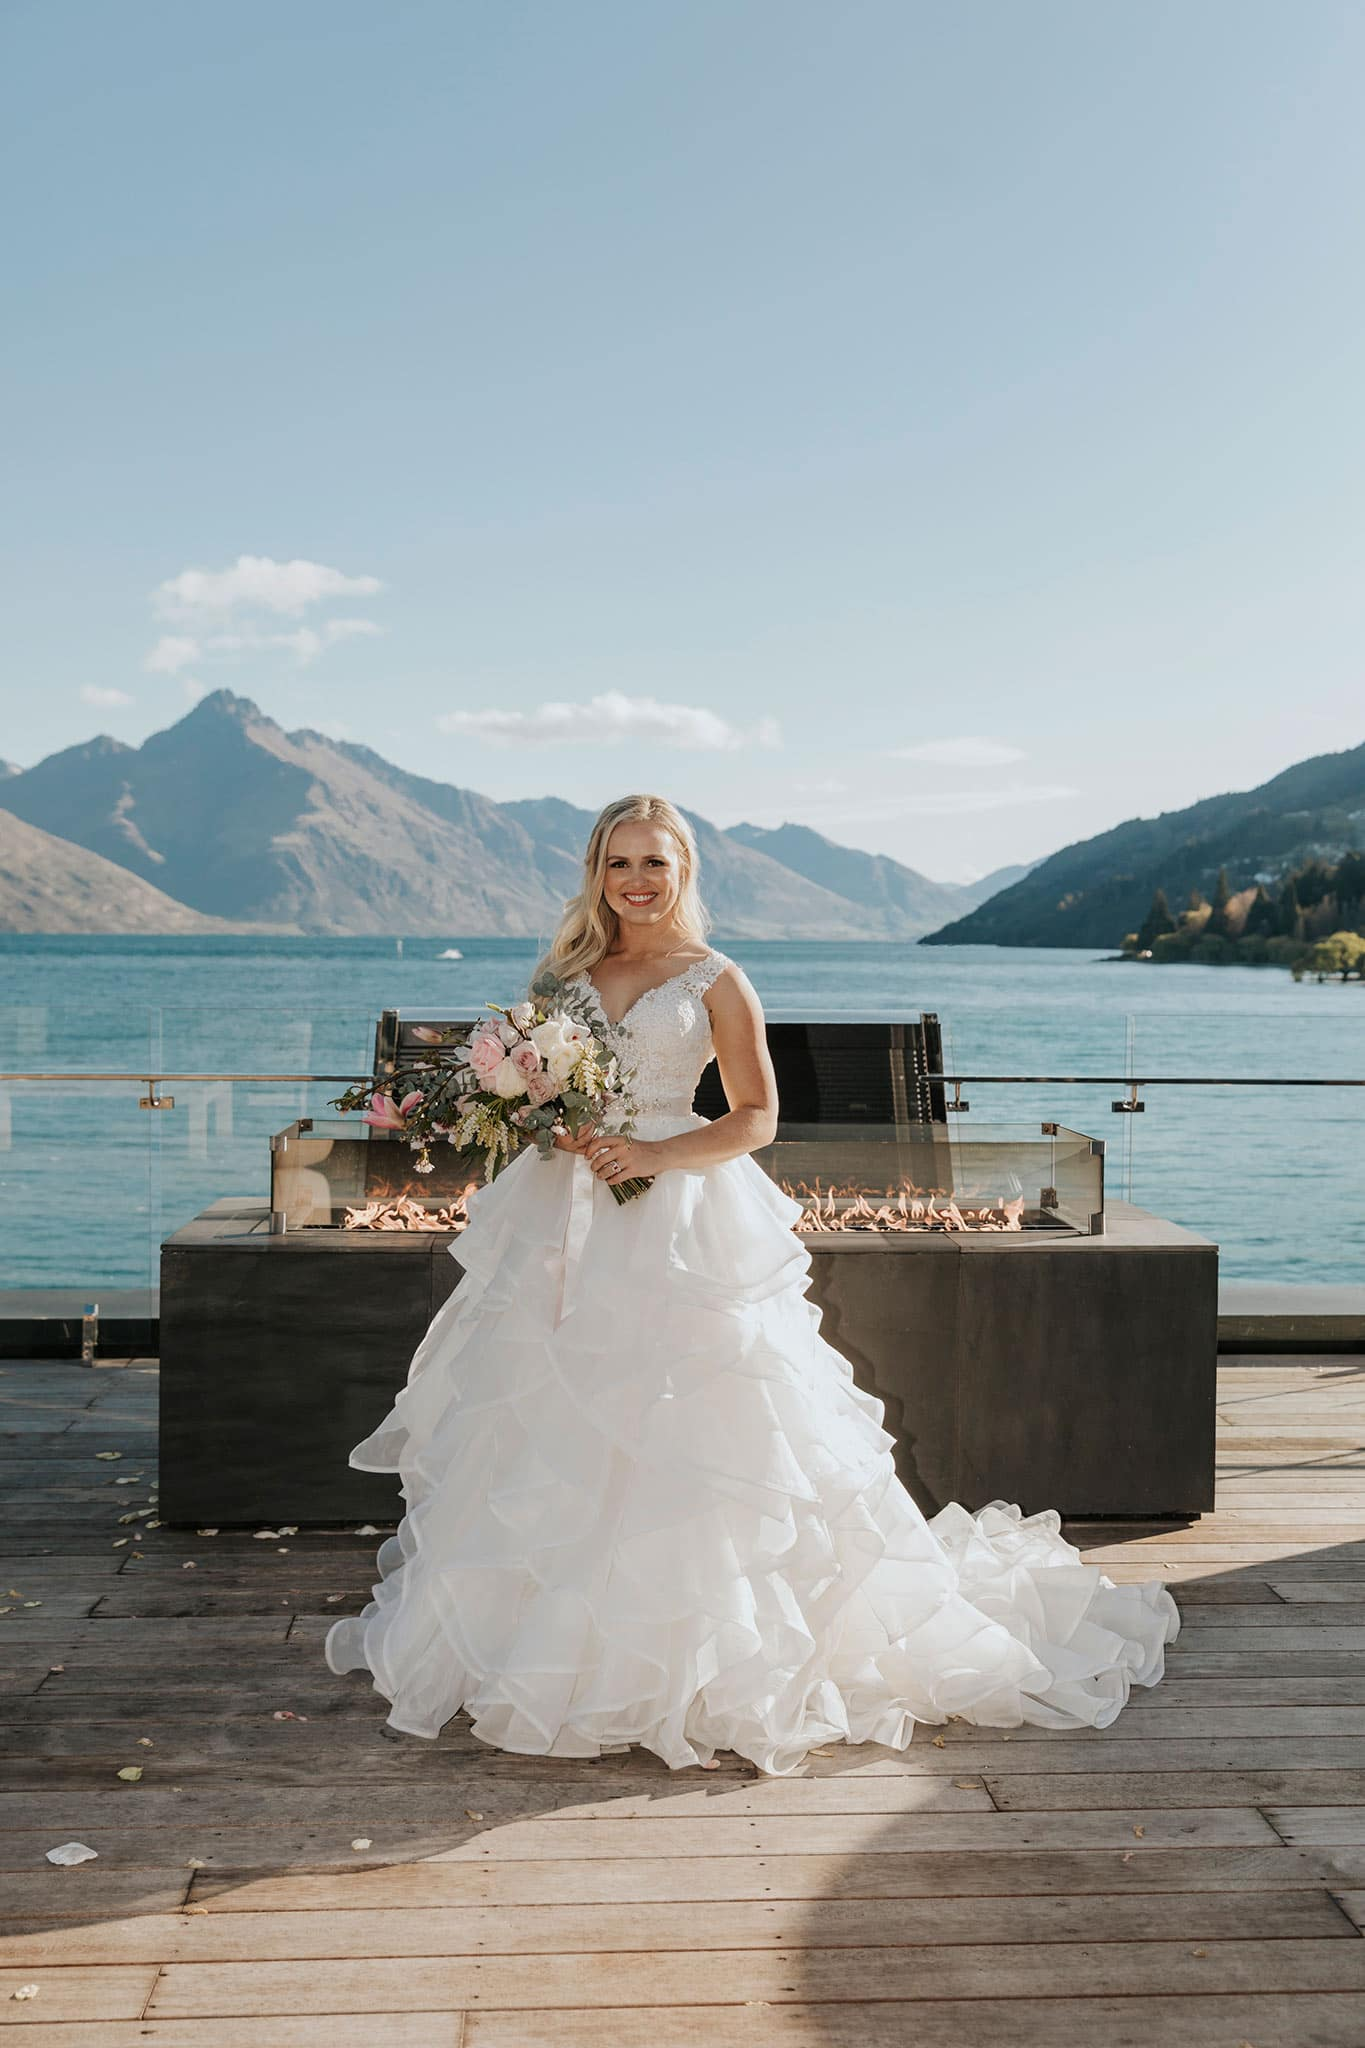 Wedding Photography at Eichardts Hotel, The Penthouse in Queenstown